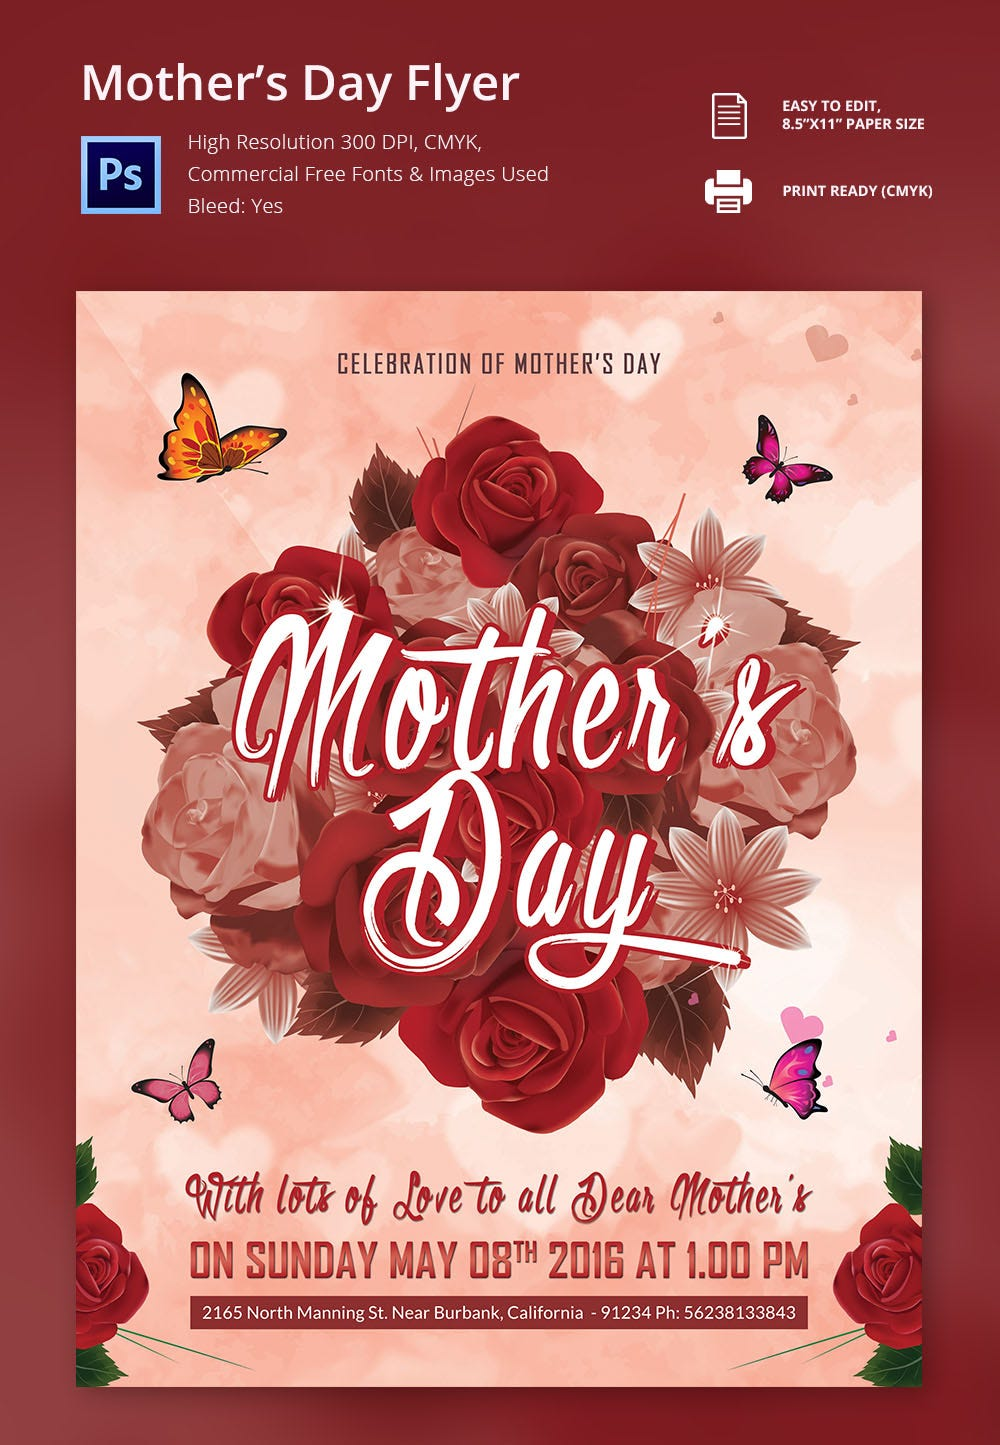 Editable Mothers Day Flyer Template